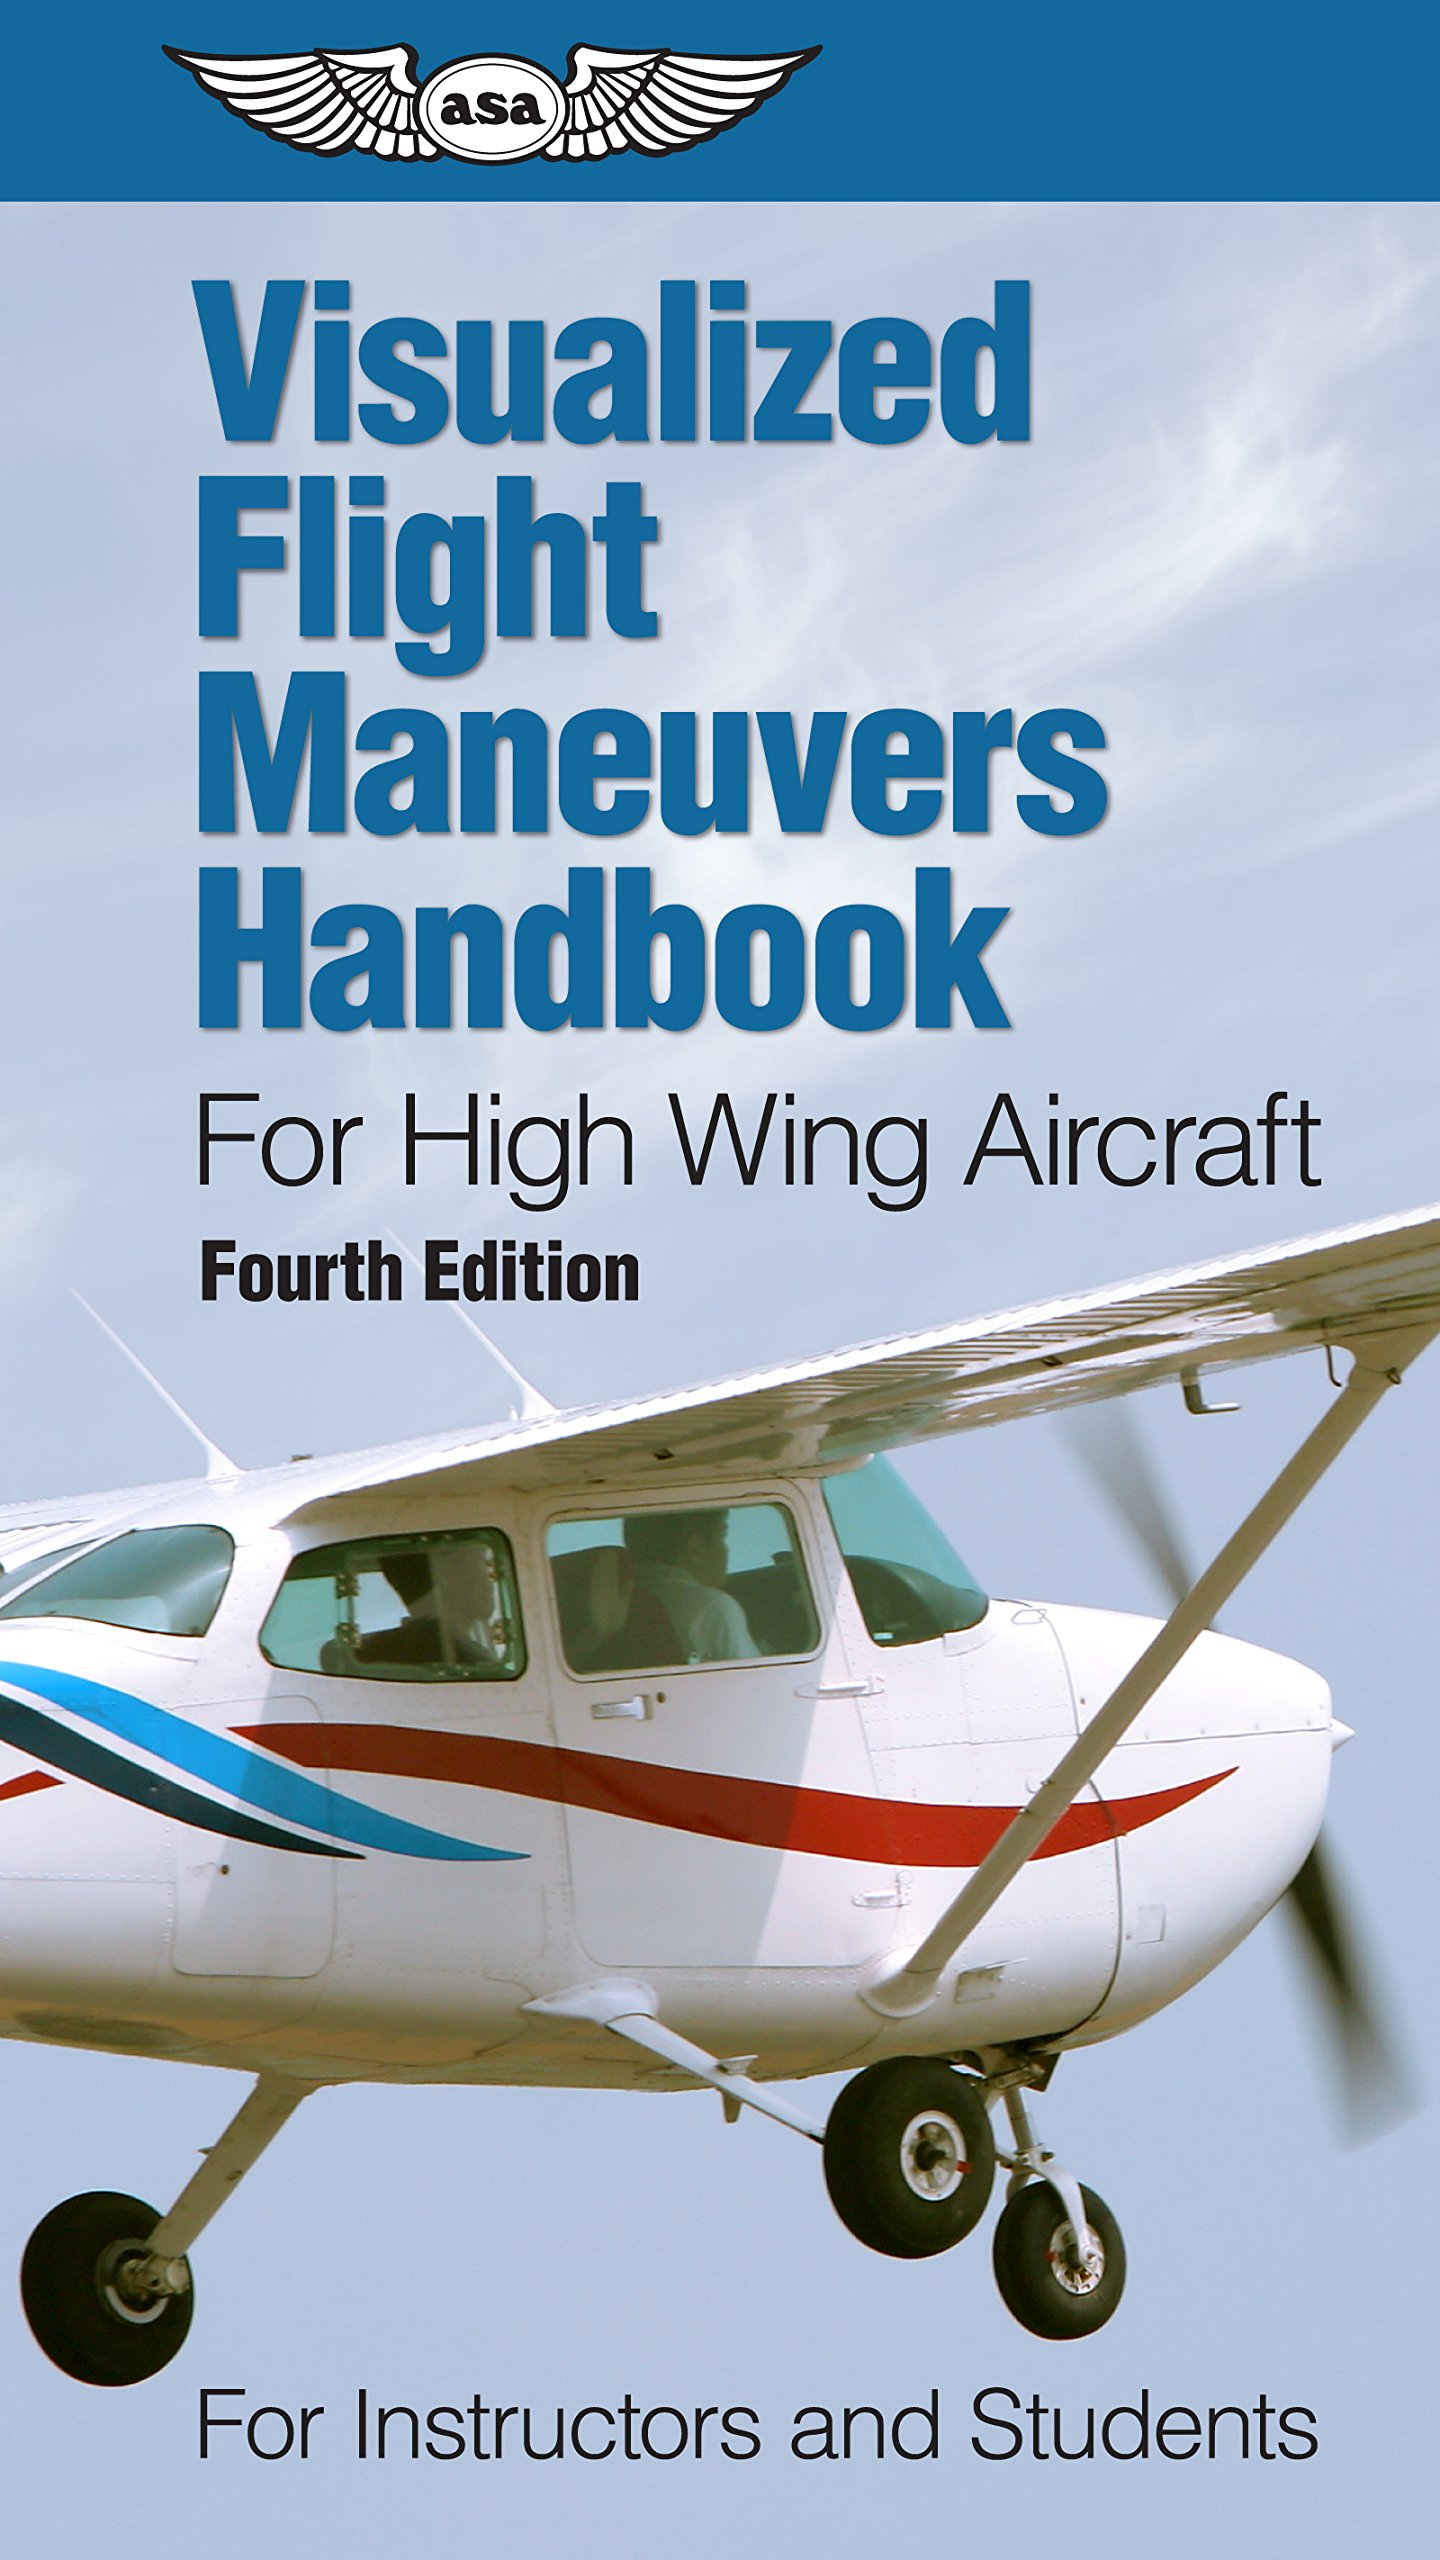 Download Visualized Flight Maneuvers Handbook For High Wing Aircraft: For Instructors And Students 